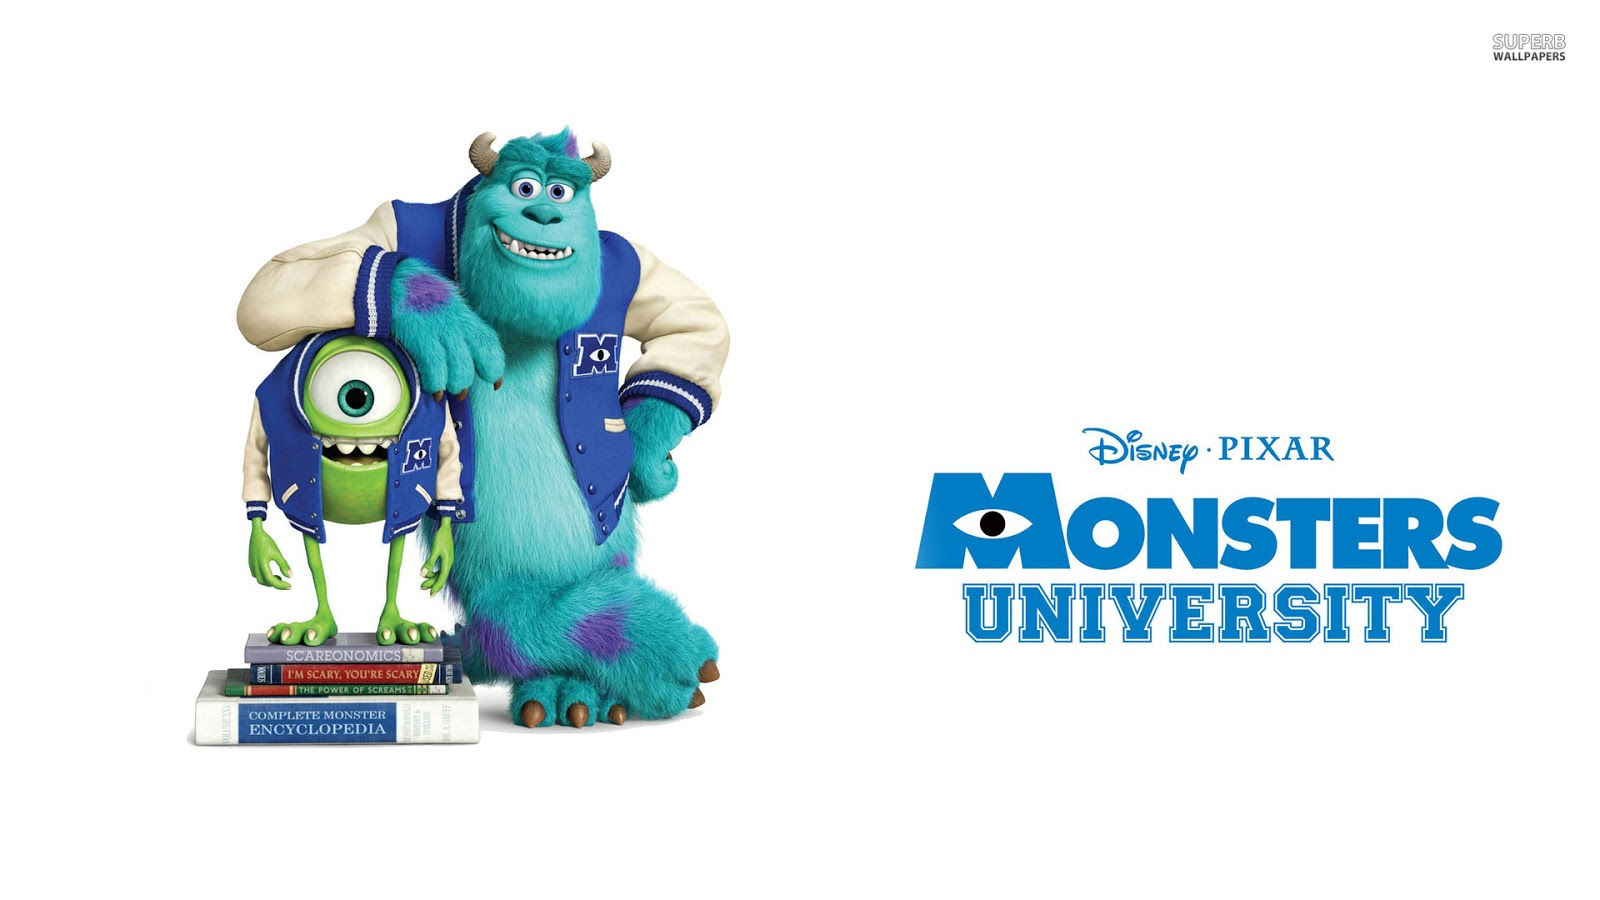 http://3.bp.blogspot.com/-J0R6Hnja8jU/UVeFn7gFXYI/AAAAAAAAdDg/ue5sM1_3VZk/s1600/sulley-and-mike-wazowski-monsters-university-18250-1920x1080.jpg